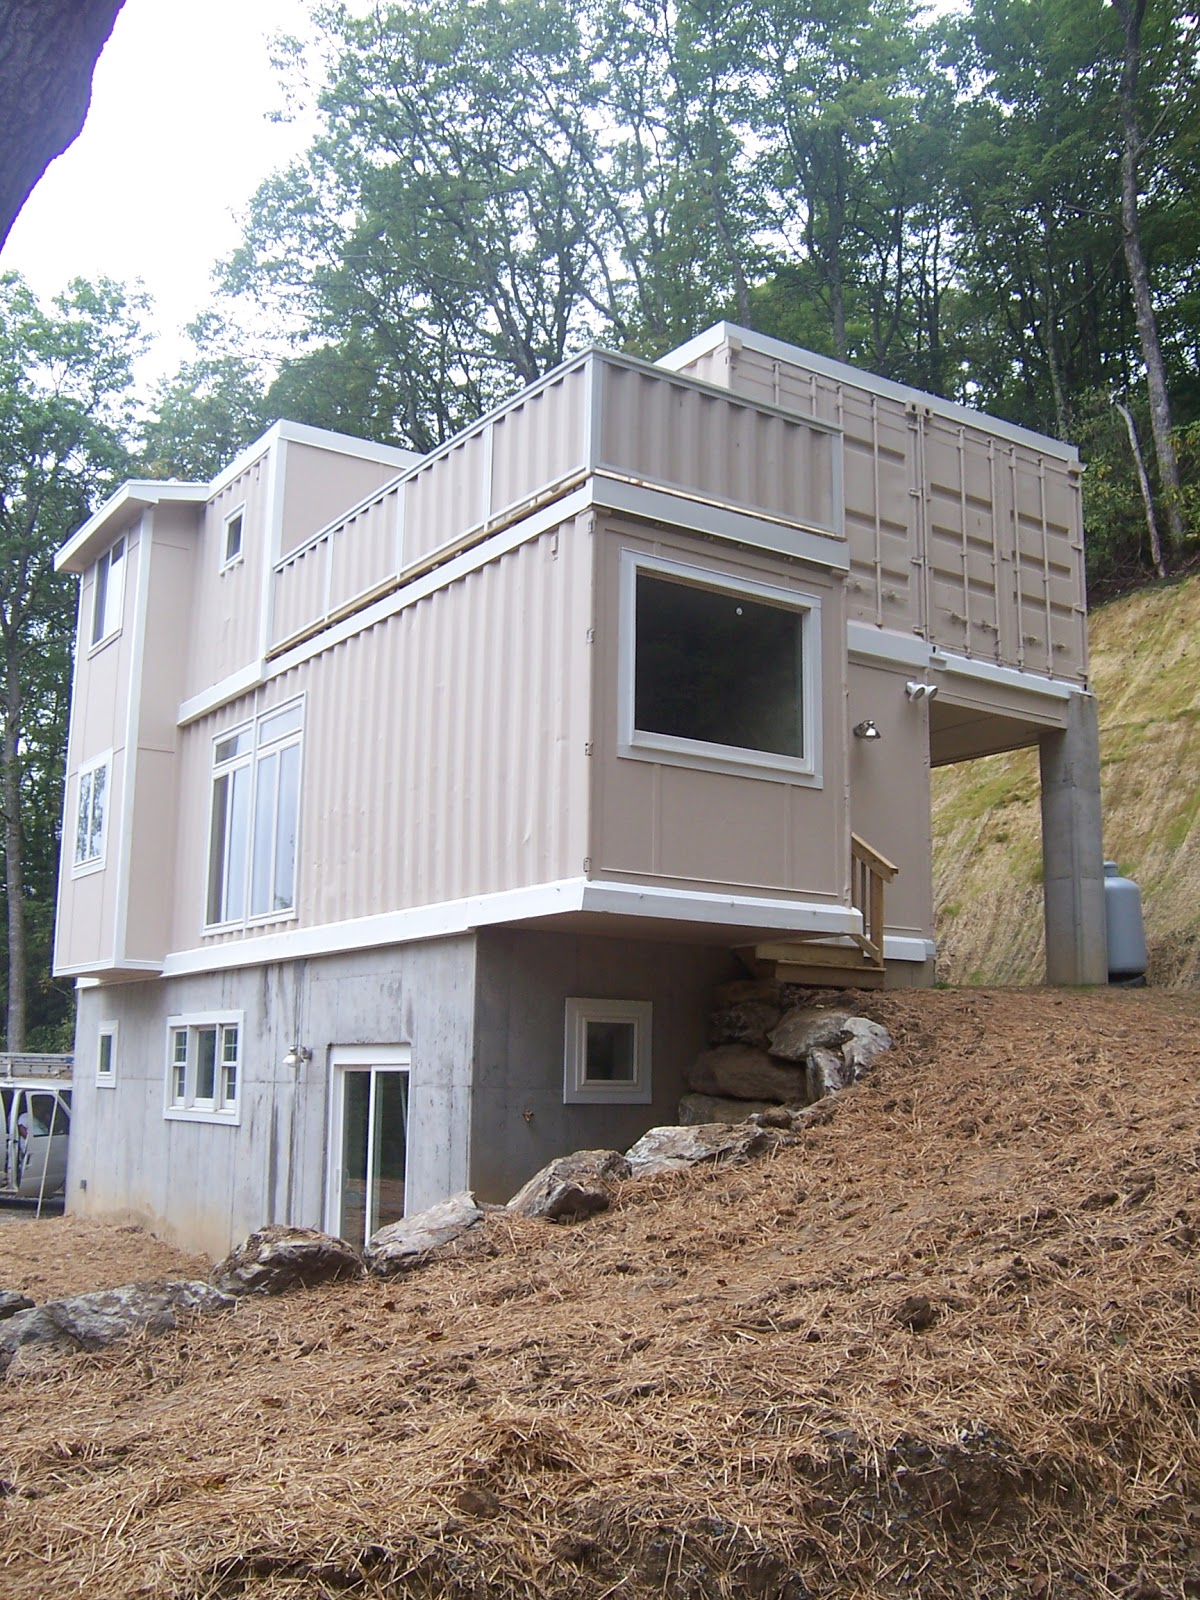 Shipping container homes high country green boxes for Container home plans for sale